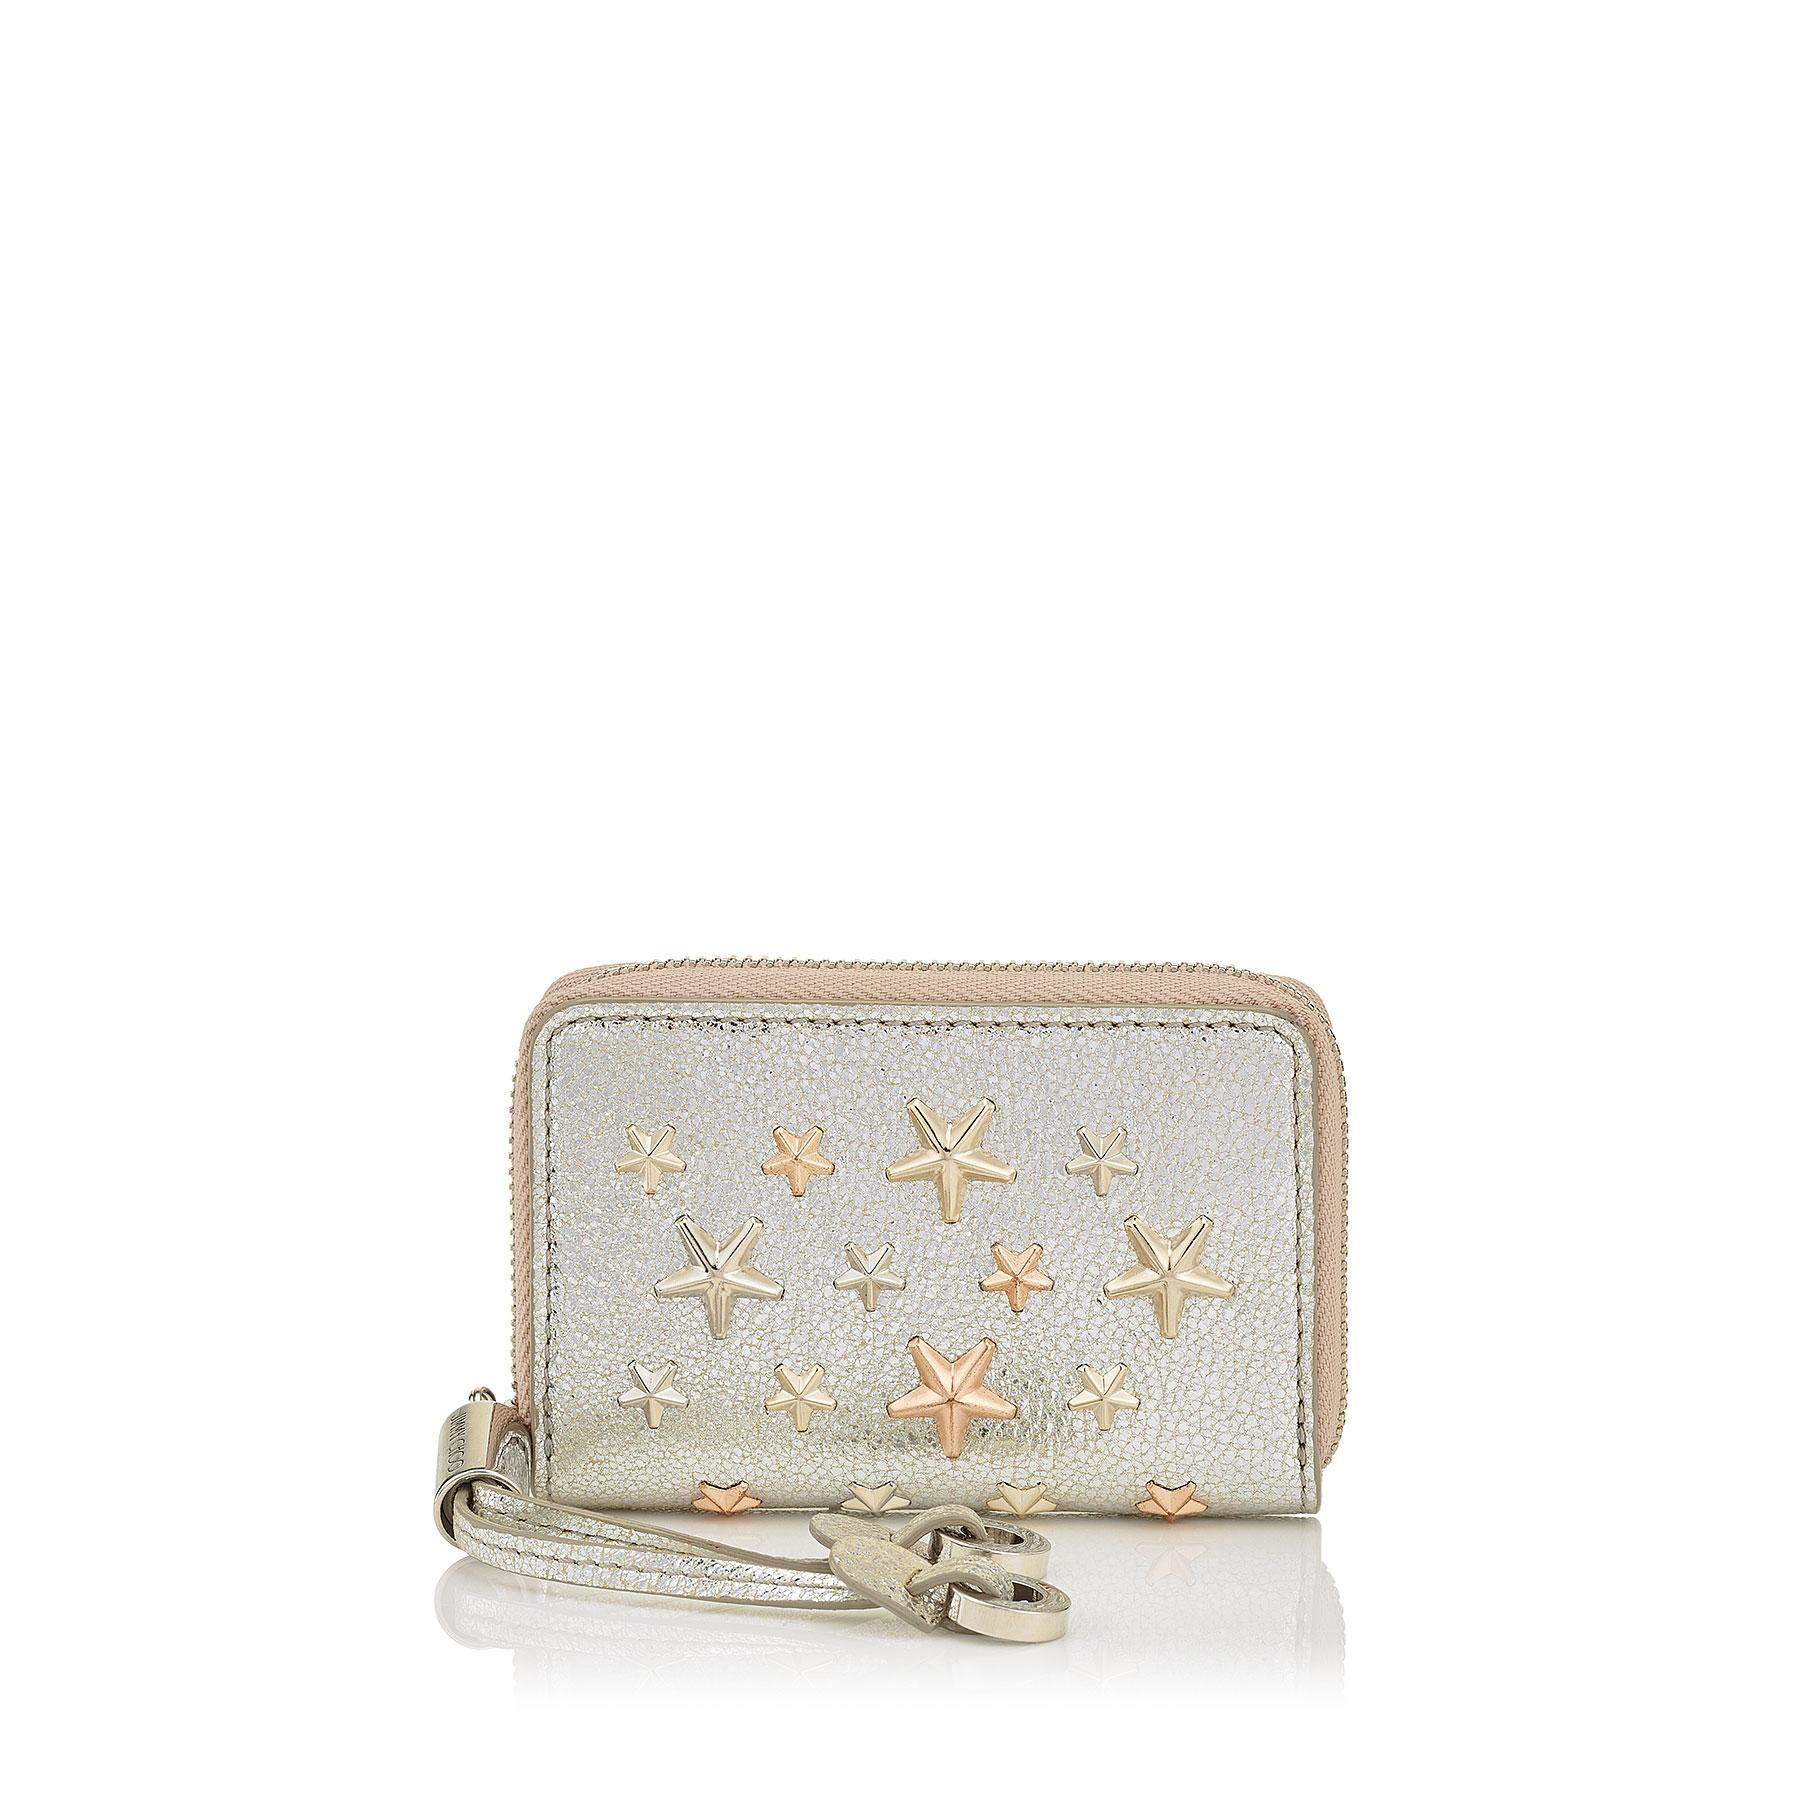 00dc8016d51 Jimmy Choo Nellie Champagne Glitter Leather With Multi Metal Rose Gold  Stars Coin Purse In Champagne